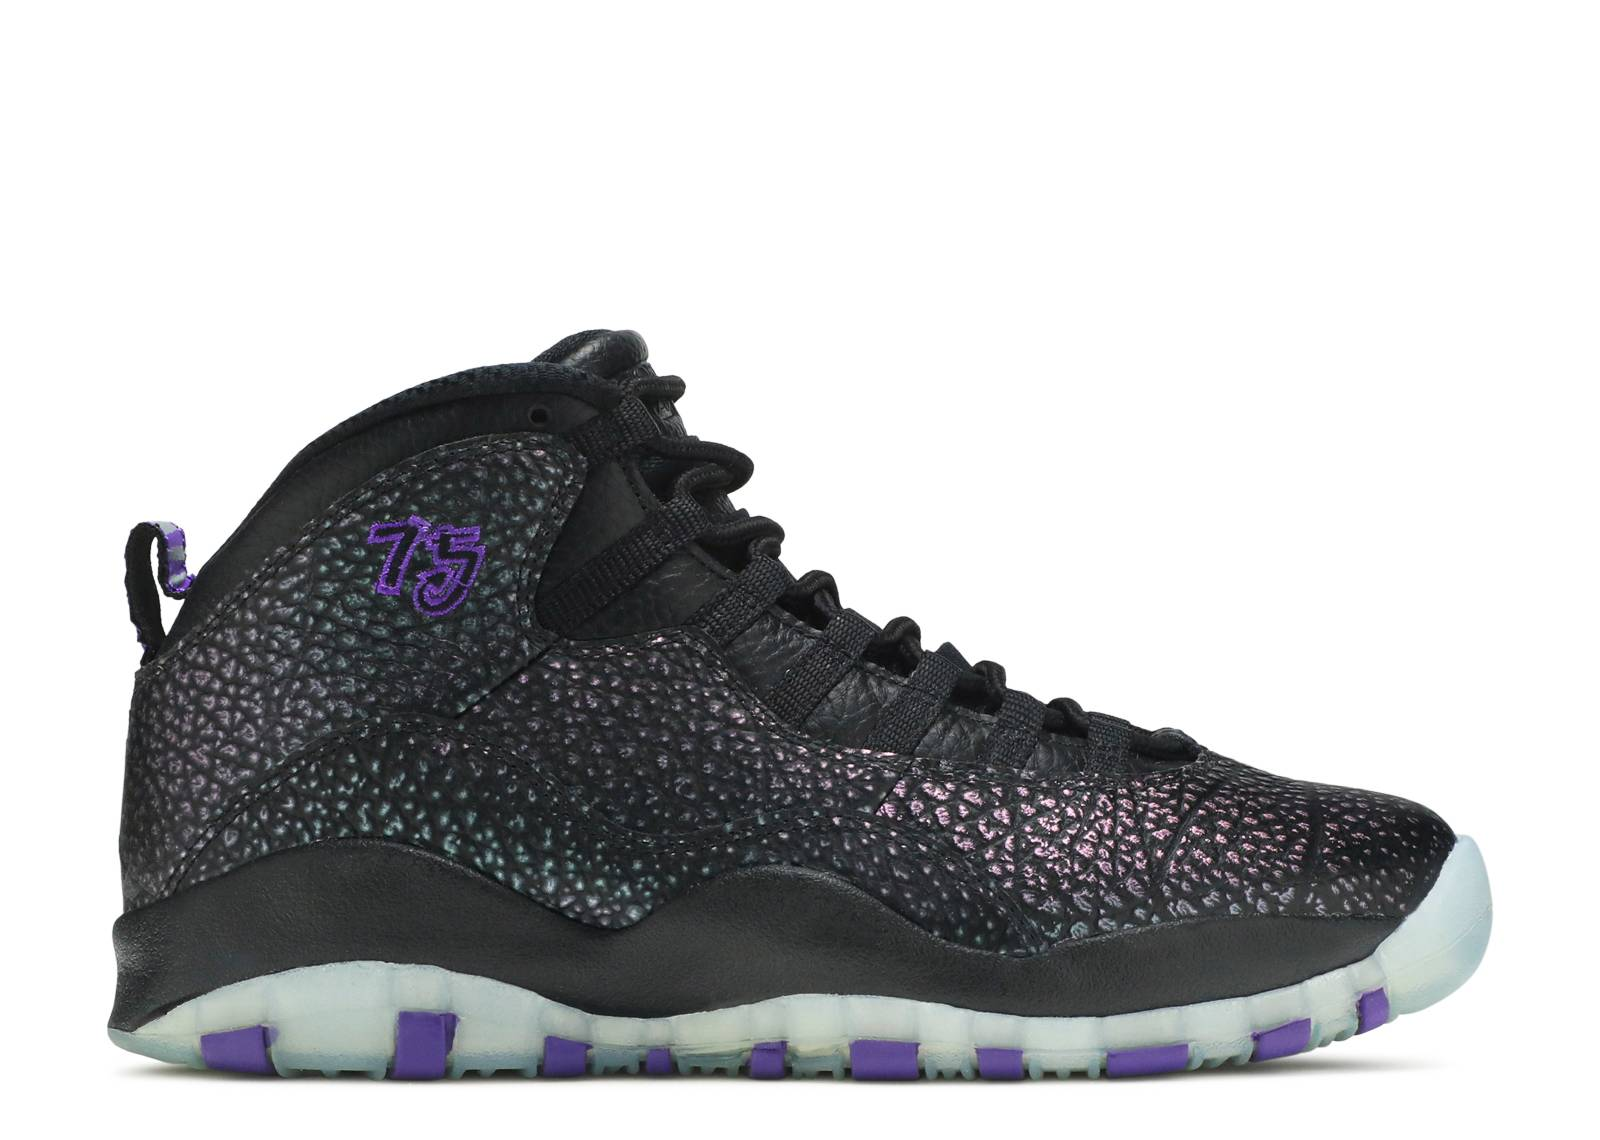 b8db87099e6 ... discount code for air jordan retro 10 paris 67341 ad9cc